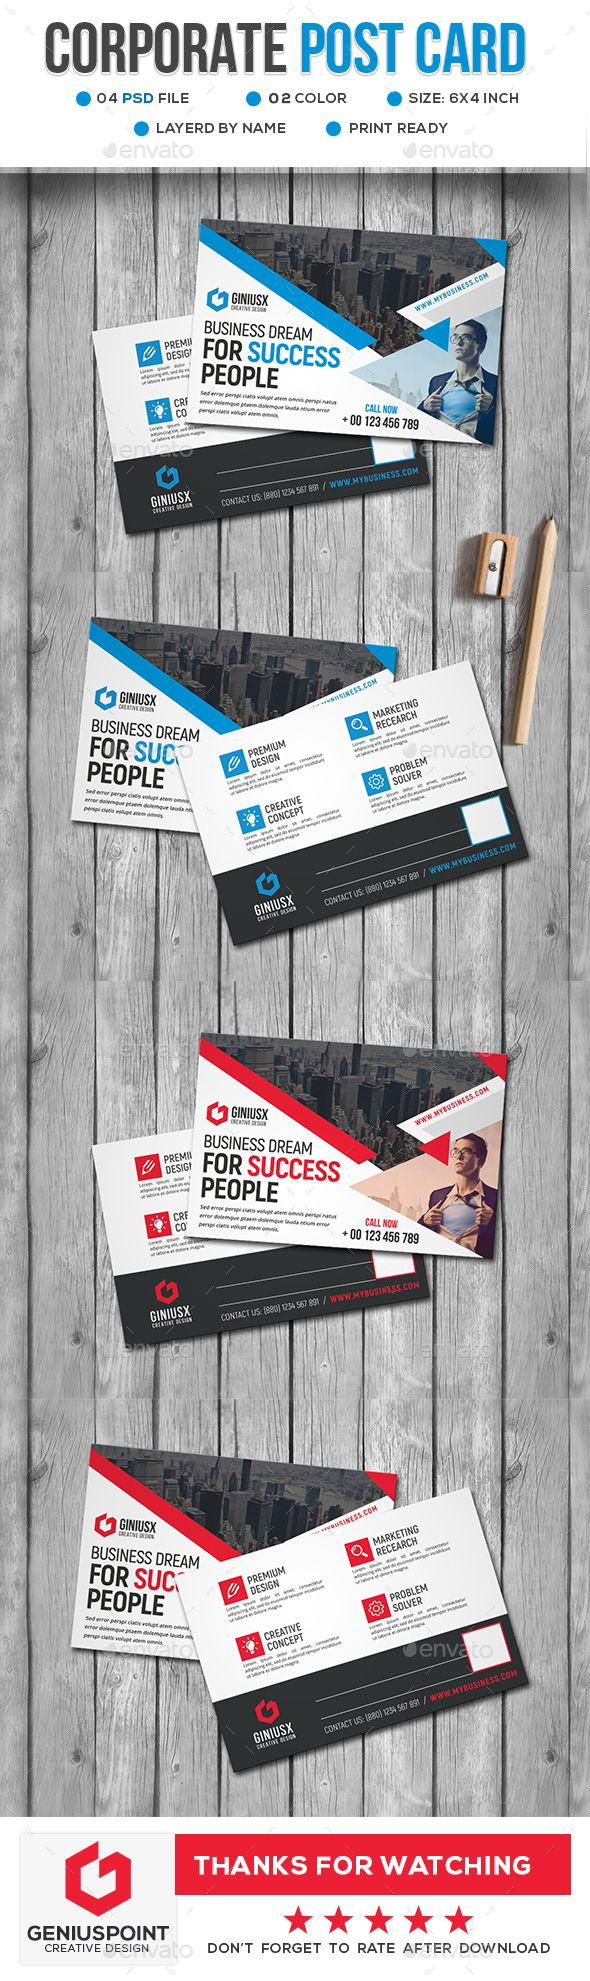 Corporate Postcard Template PSD